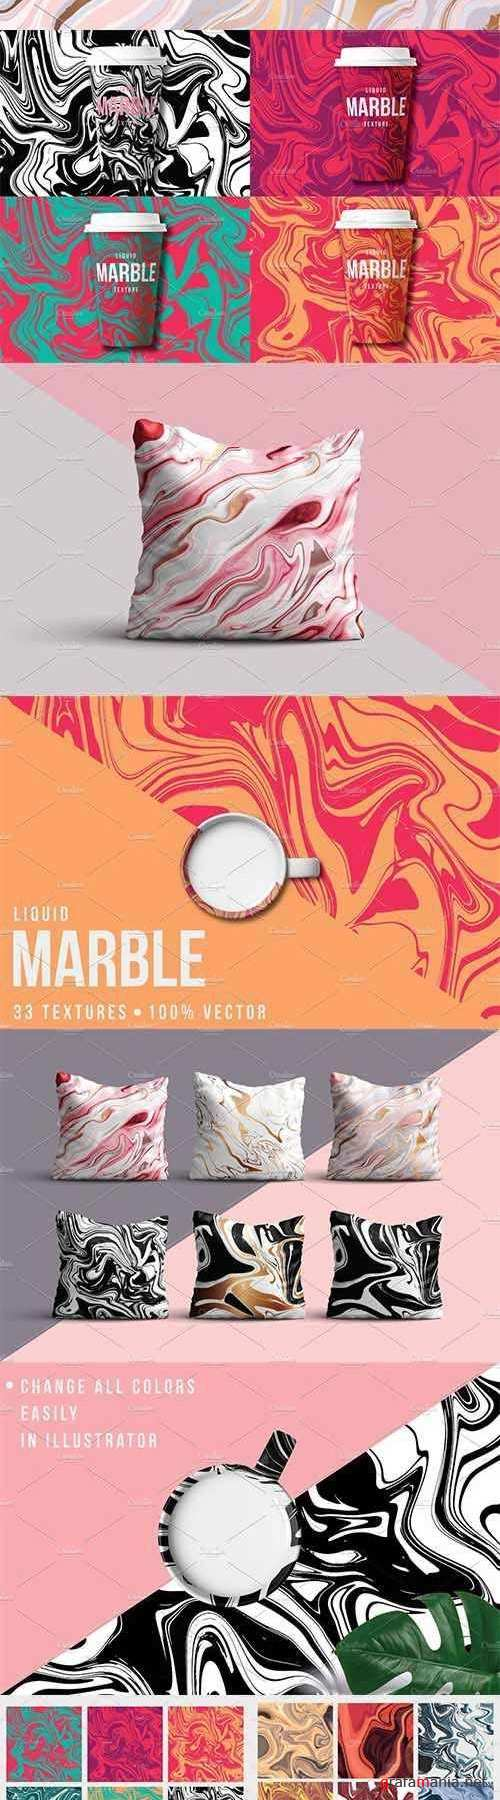 33 Marble Textures - 100% Vector - 2039711